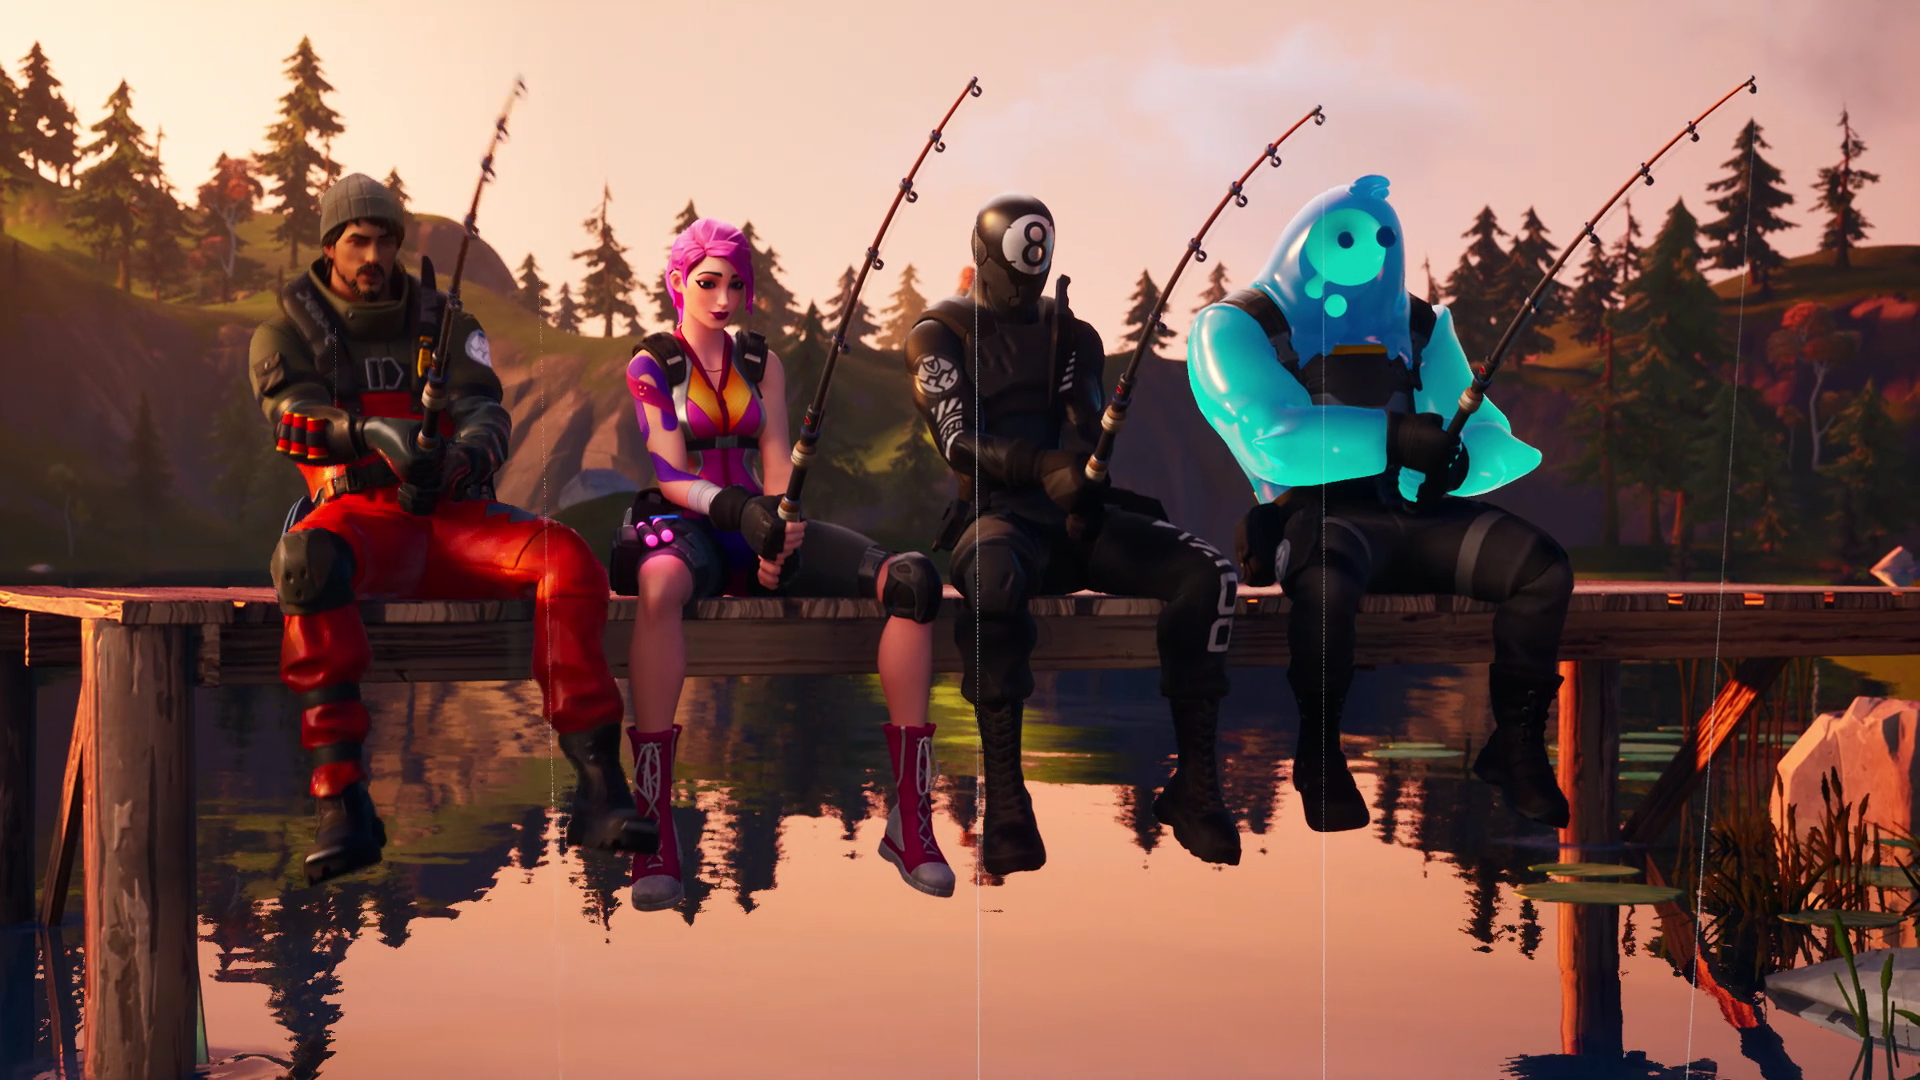 Fortnite is holding a fishing competition